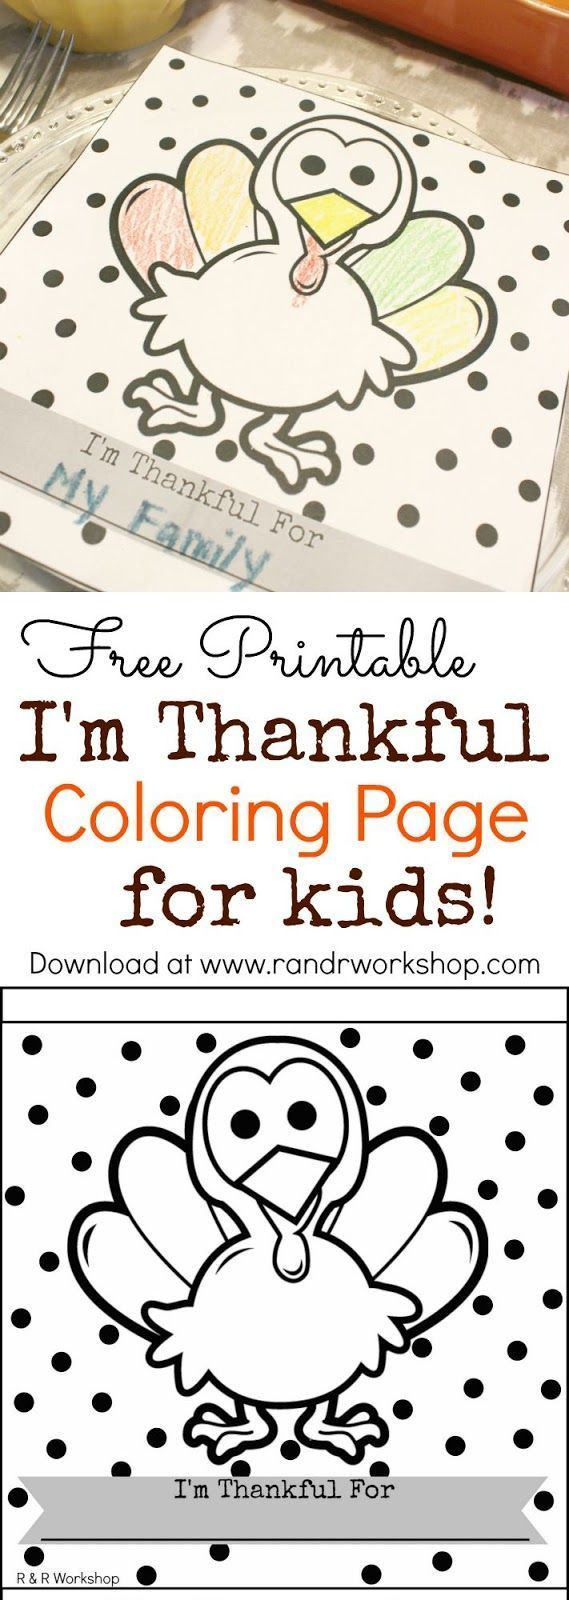 I'm Thankful Coloring Page for Kids (Free Printable ...